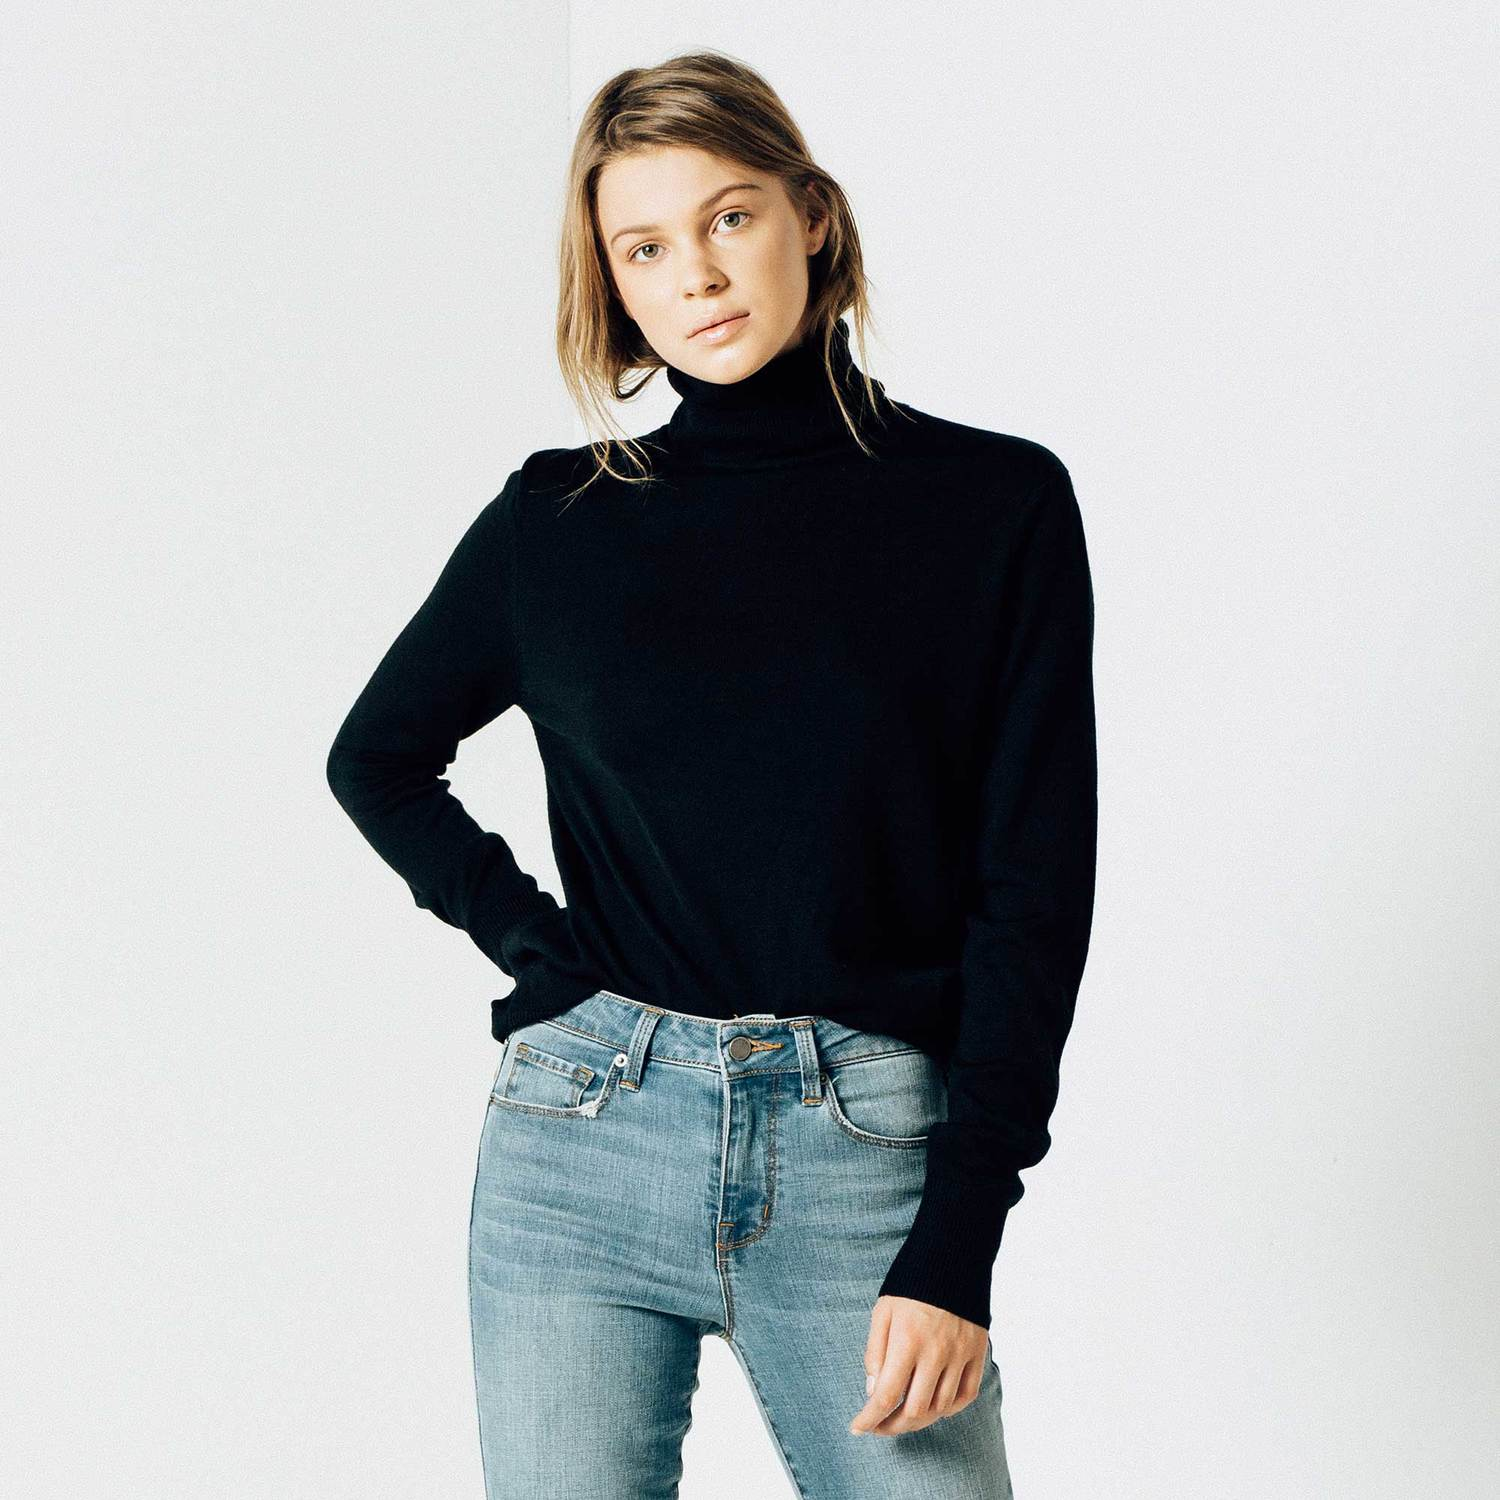 Turtleneck Sweater for Women in exclusive materials and designs